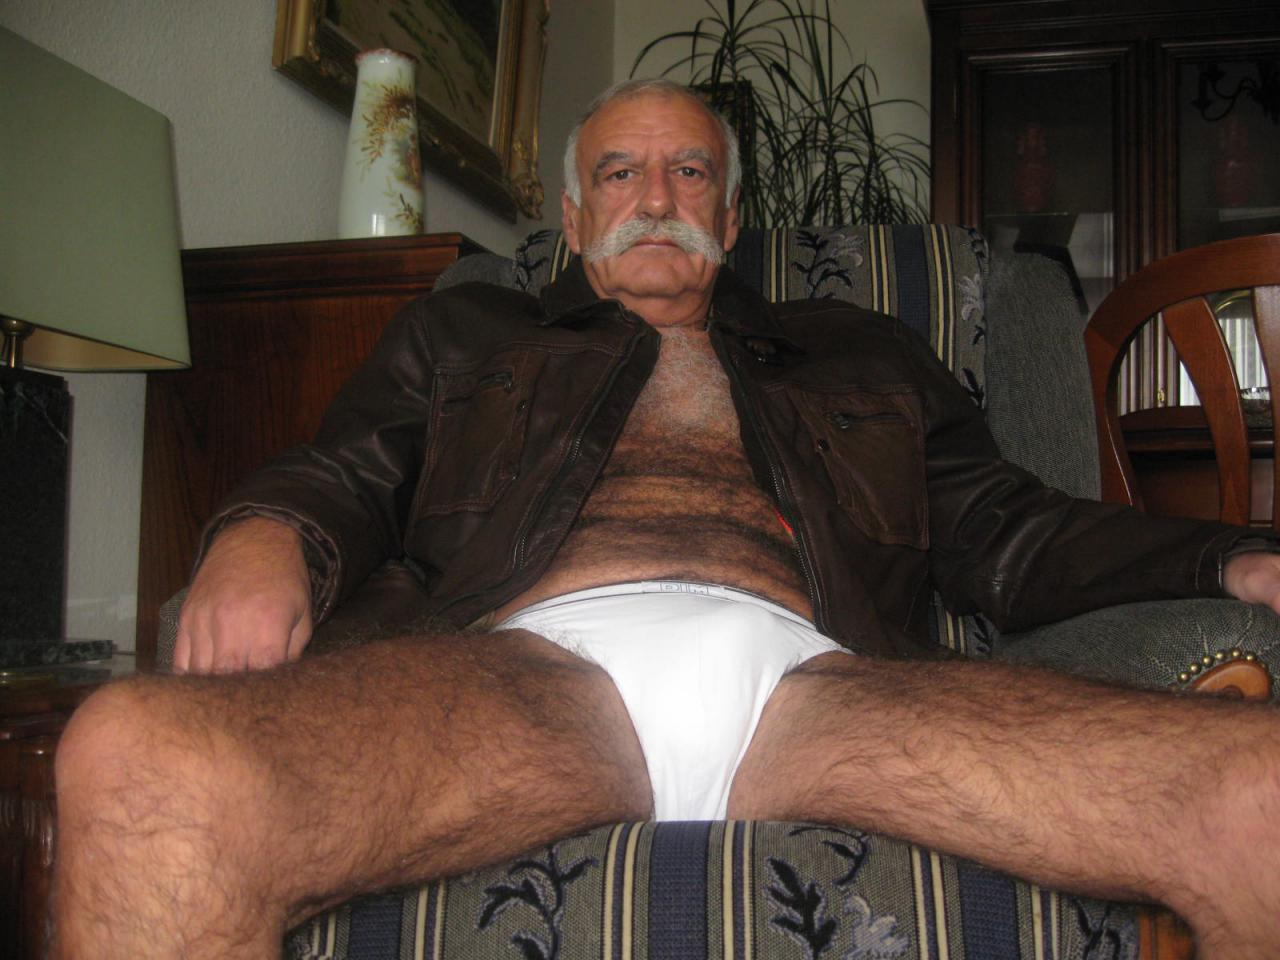 hairy old men galleries jpg 1080x810